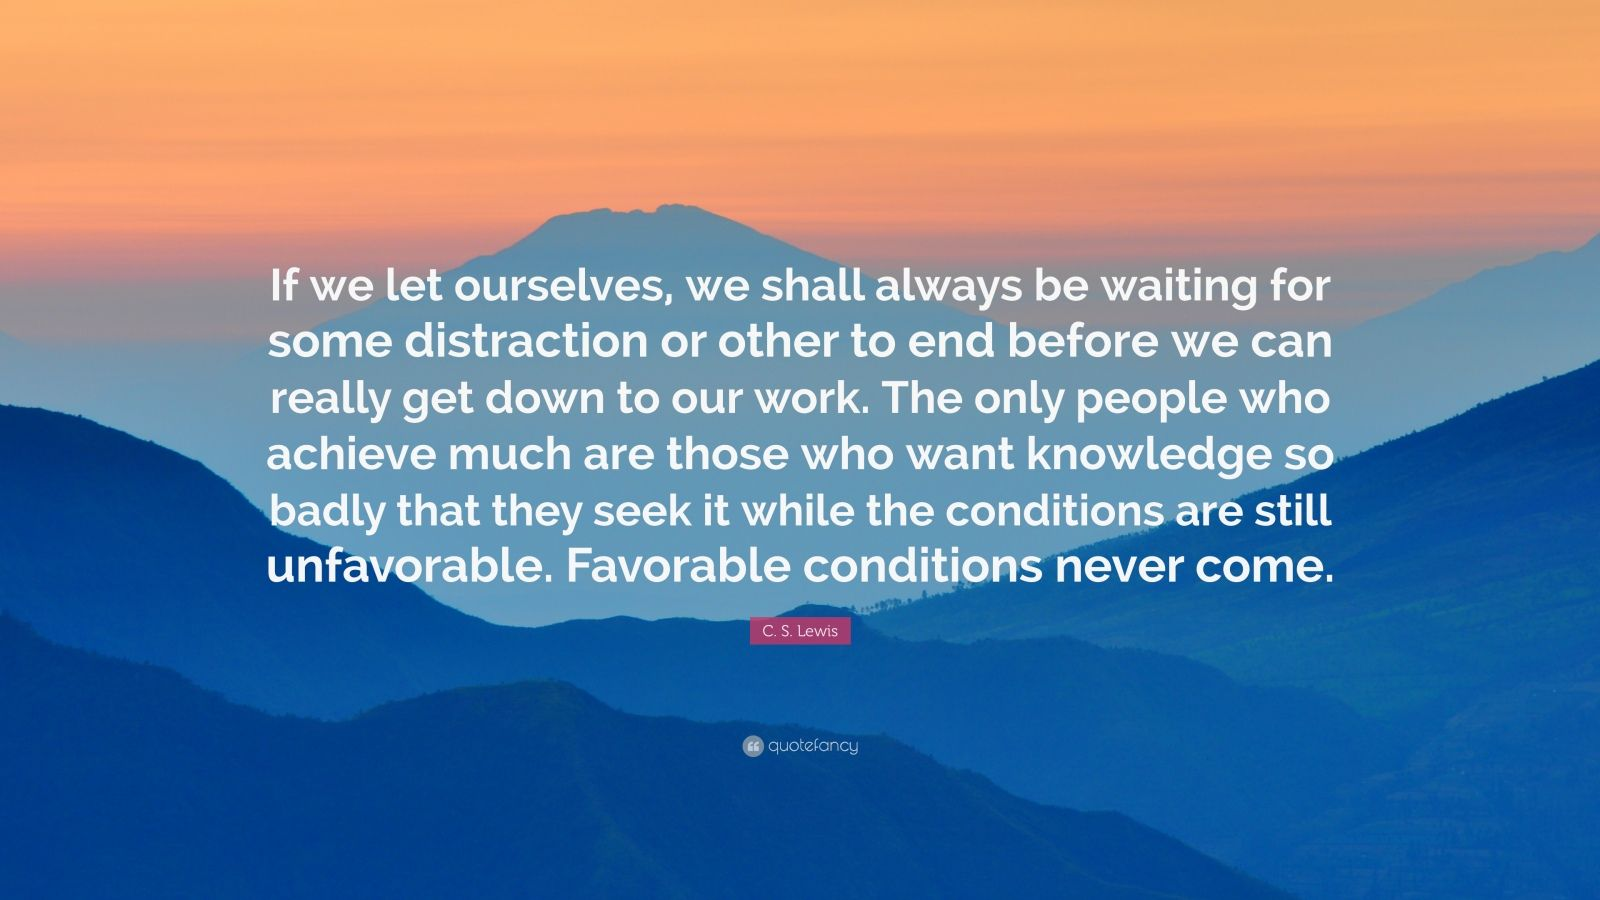 """C. S. Lewis Quote: """"If we let ourselves, we shall always be waiting for some distraction or other to end before we can really get down to our work. The only people who achieve much are those who want knowledge so badly that they seek it while the conditions are still unfavorable. Favorable conditions never come."""""""